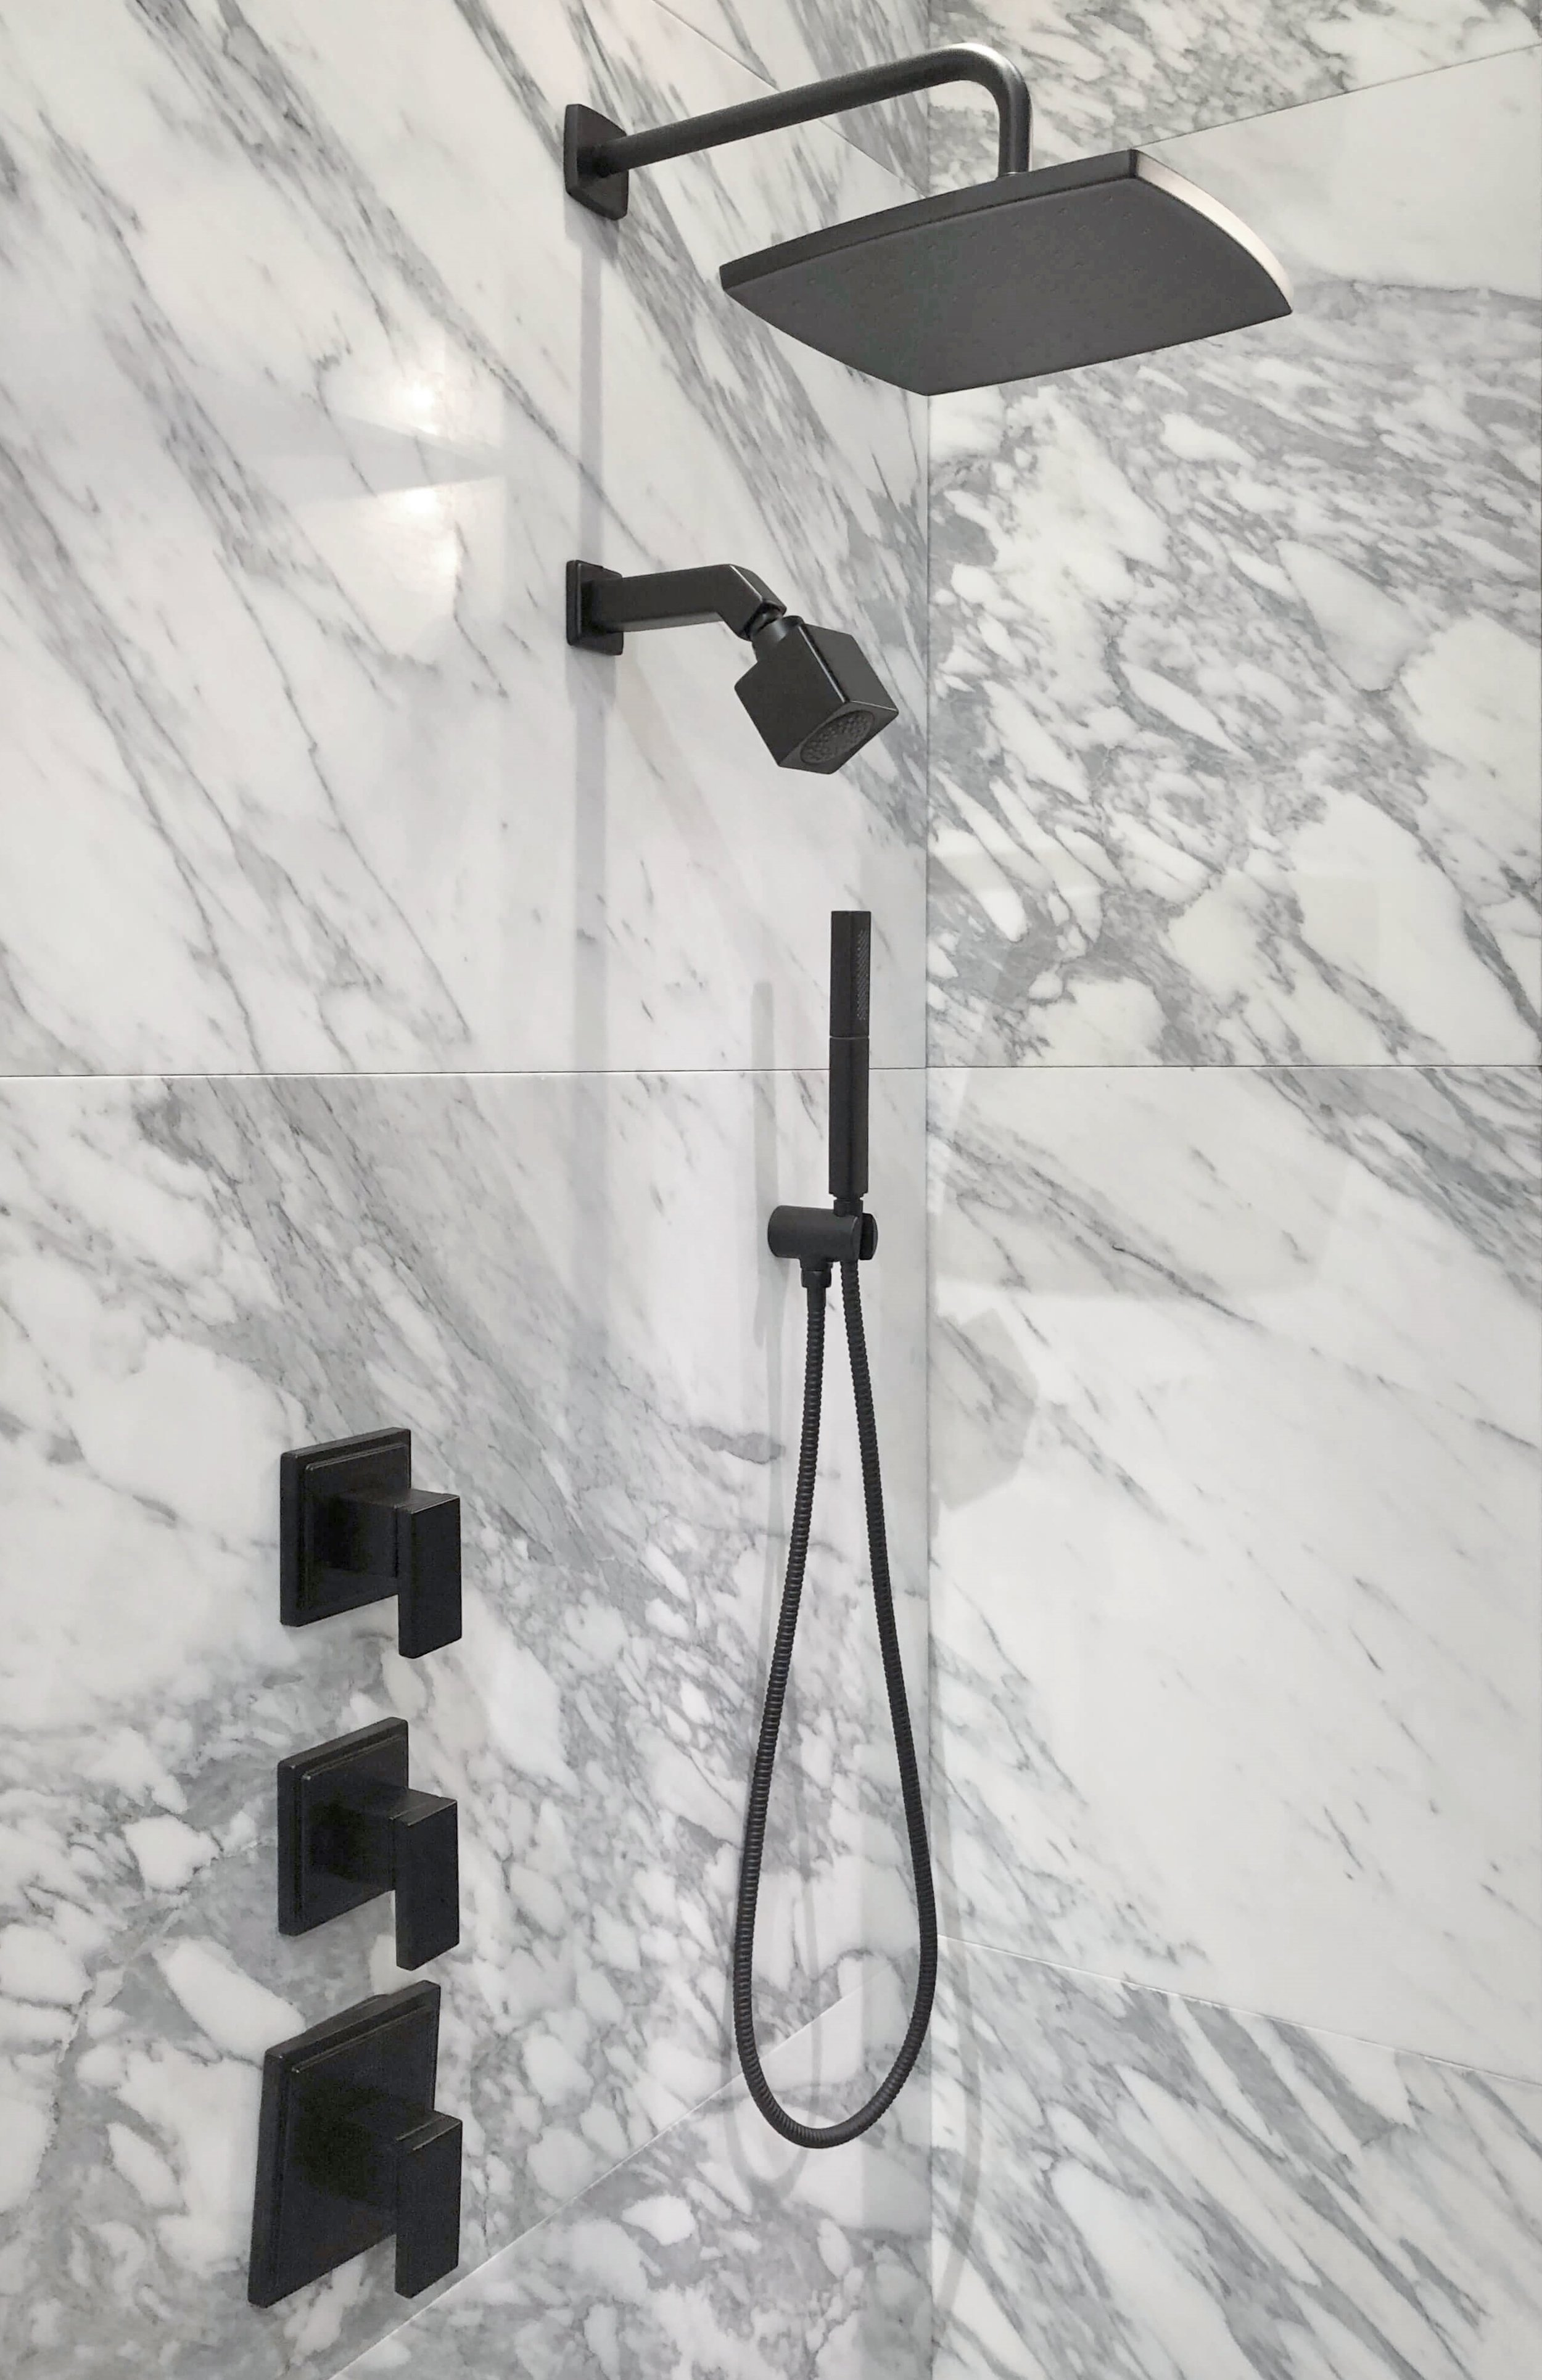 Black Shower Fixtures on white marble tile seen at Kohler booth | KBIS 2019